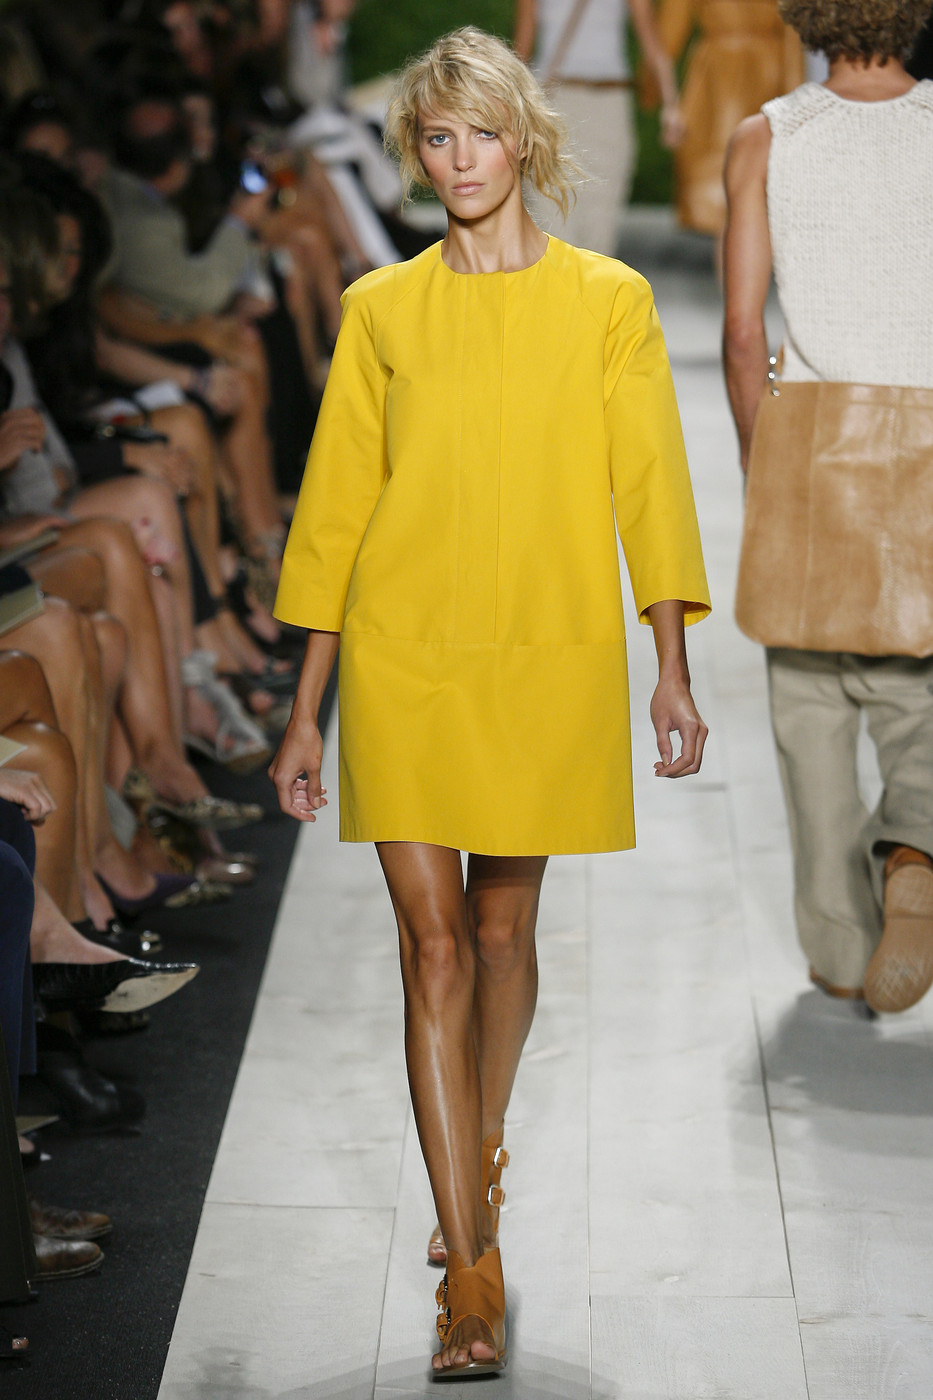 via fashioned by love | Michael Kors Spring/Summer 2011